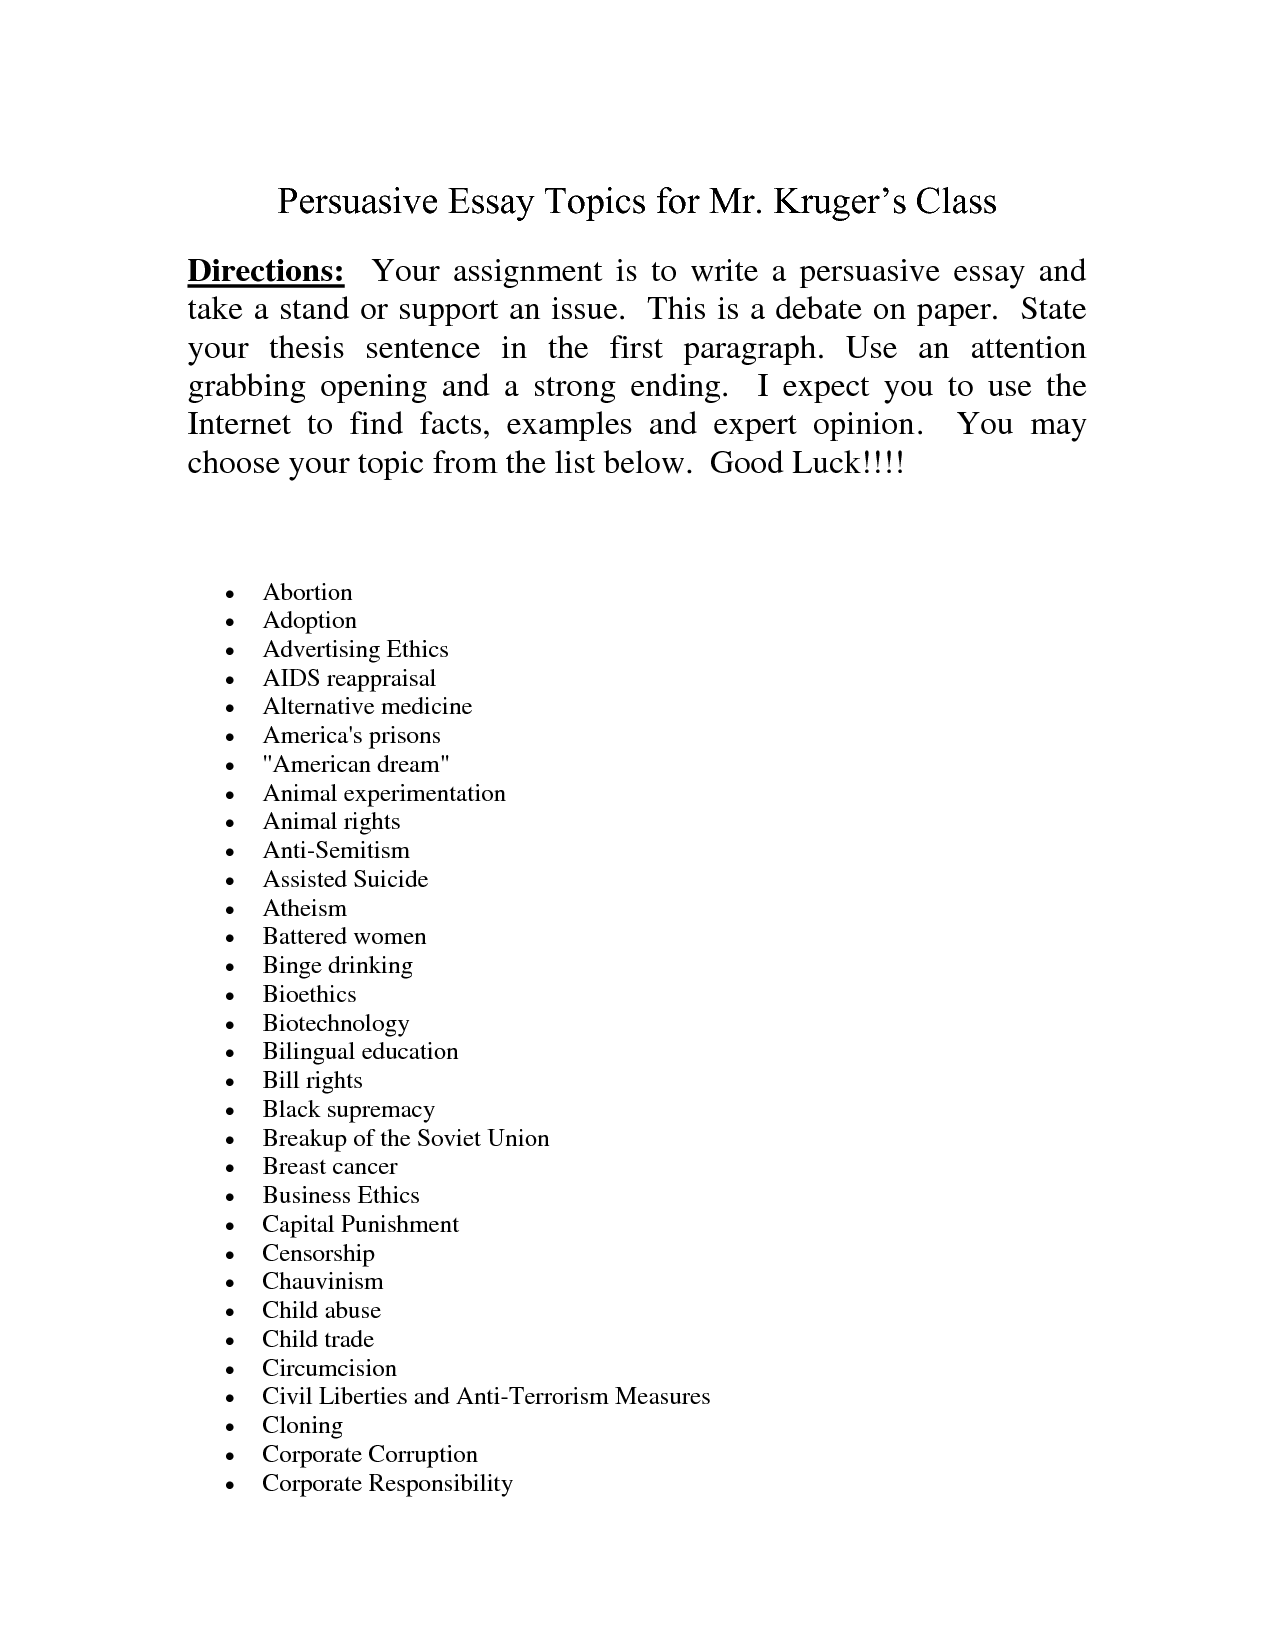 002 Essay Topic Ideas Example Persuasive Topics Outline Easy For High School Students College Essays Applicati 7th Graders Primary Middle Elementary Outstanding University Narrative 6th Full